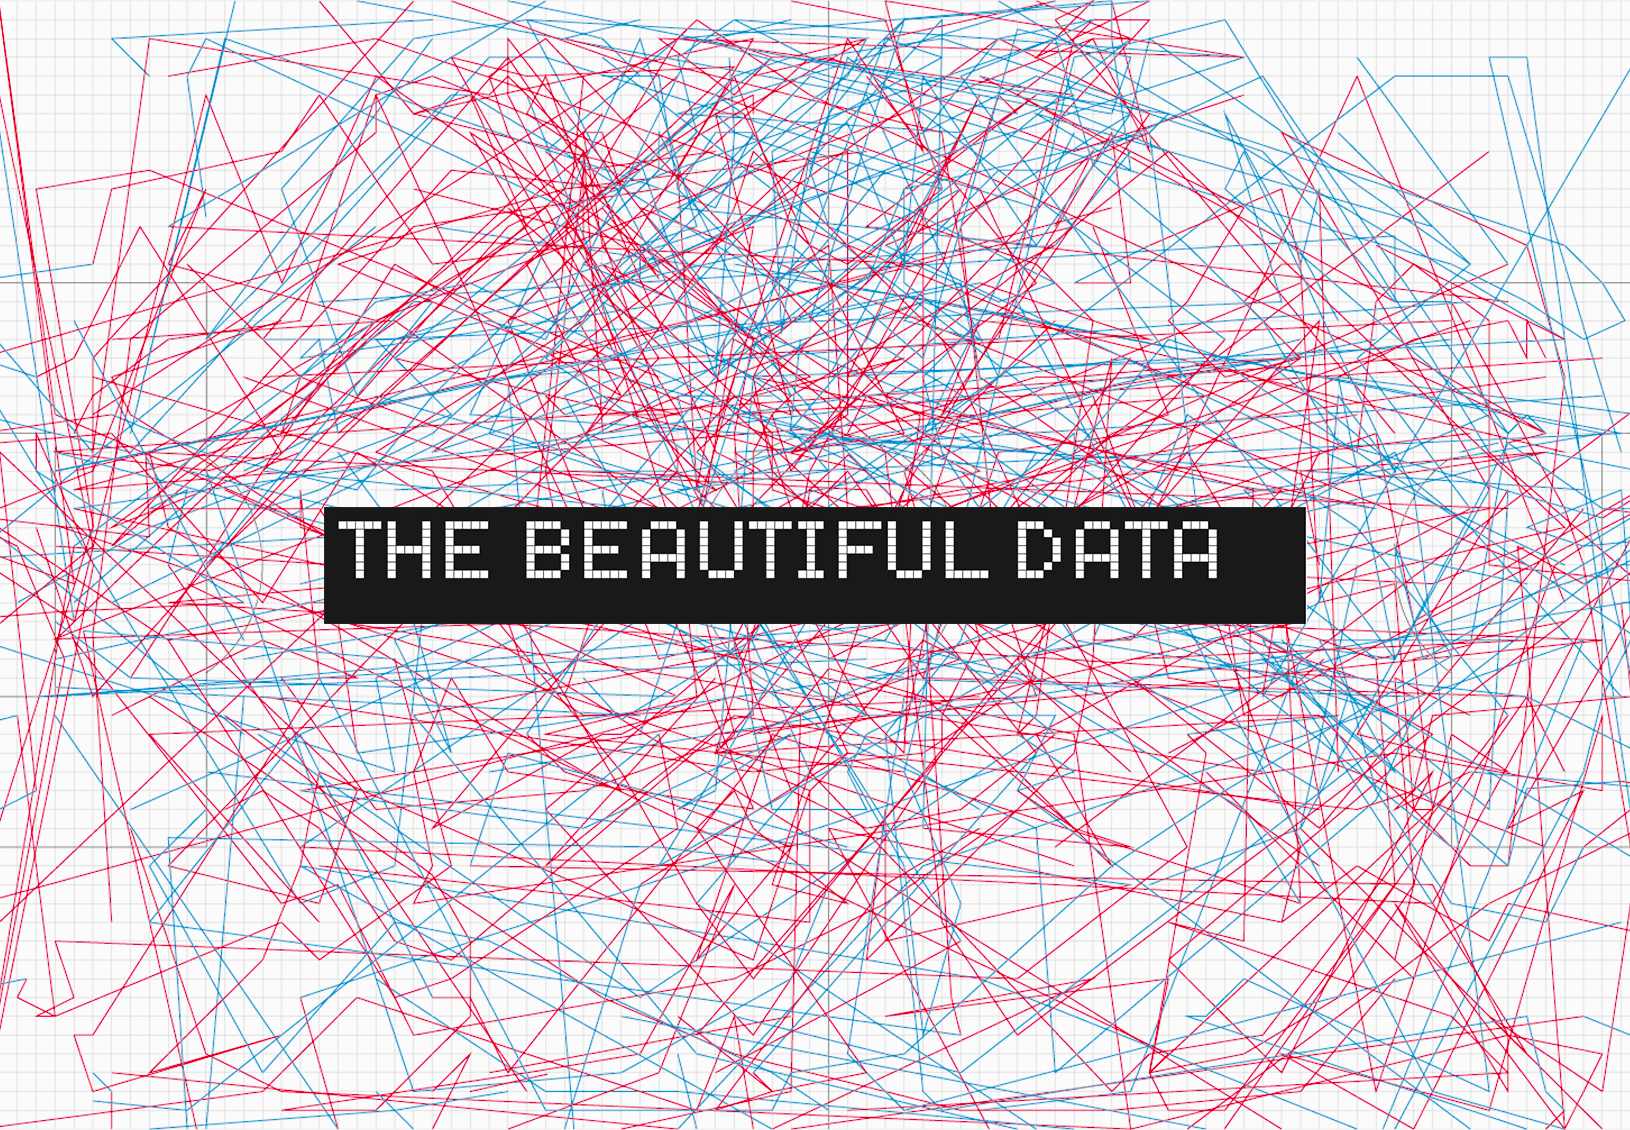 The Beautiful Data